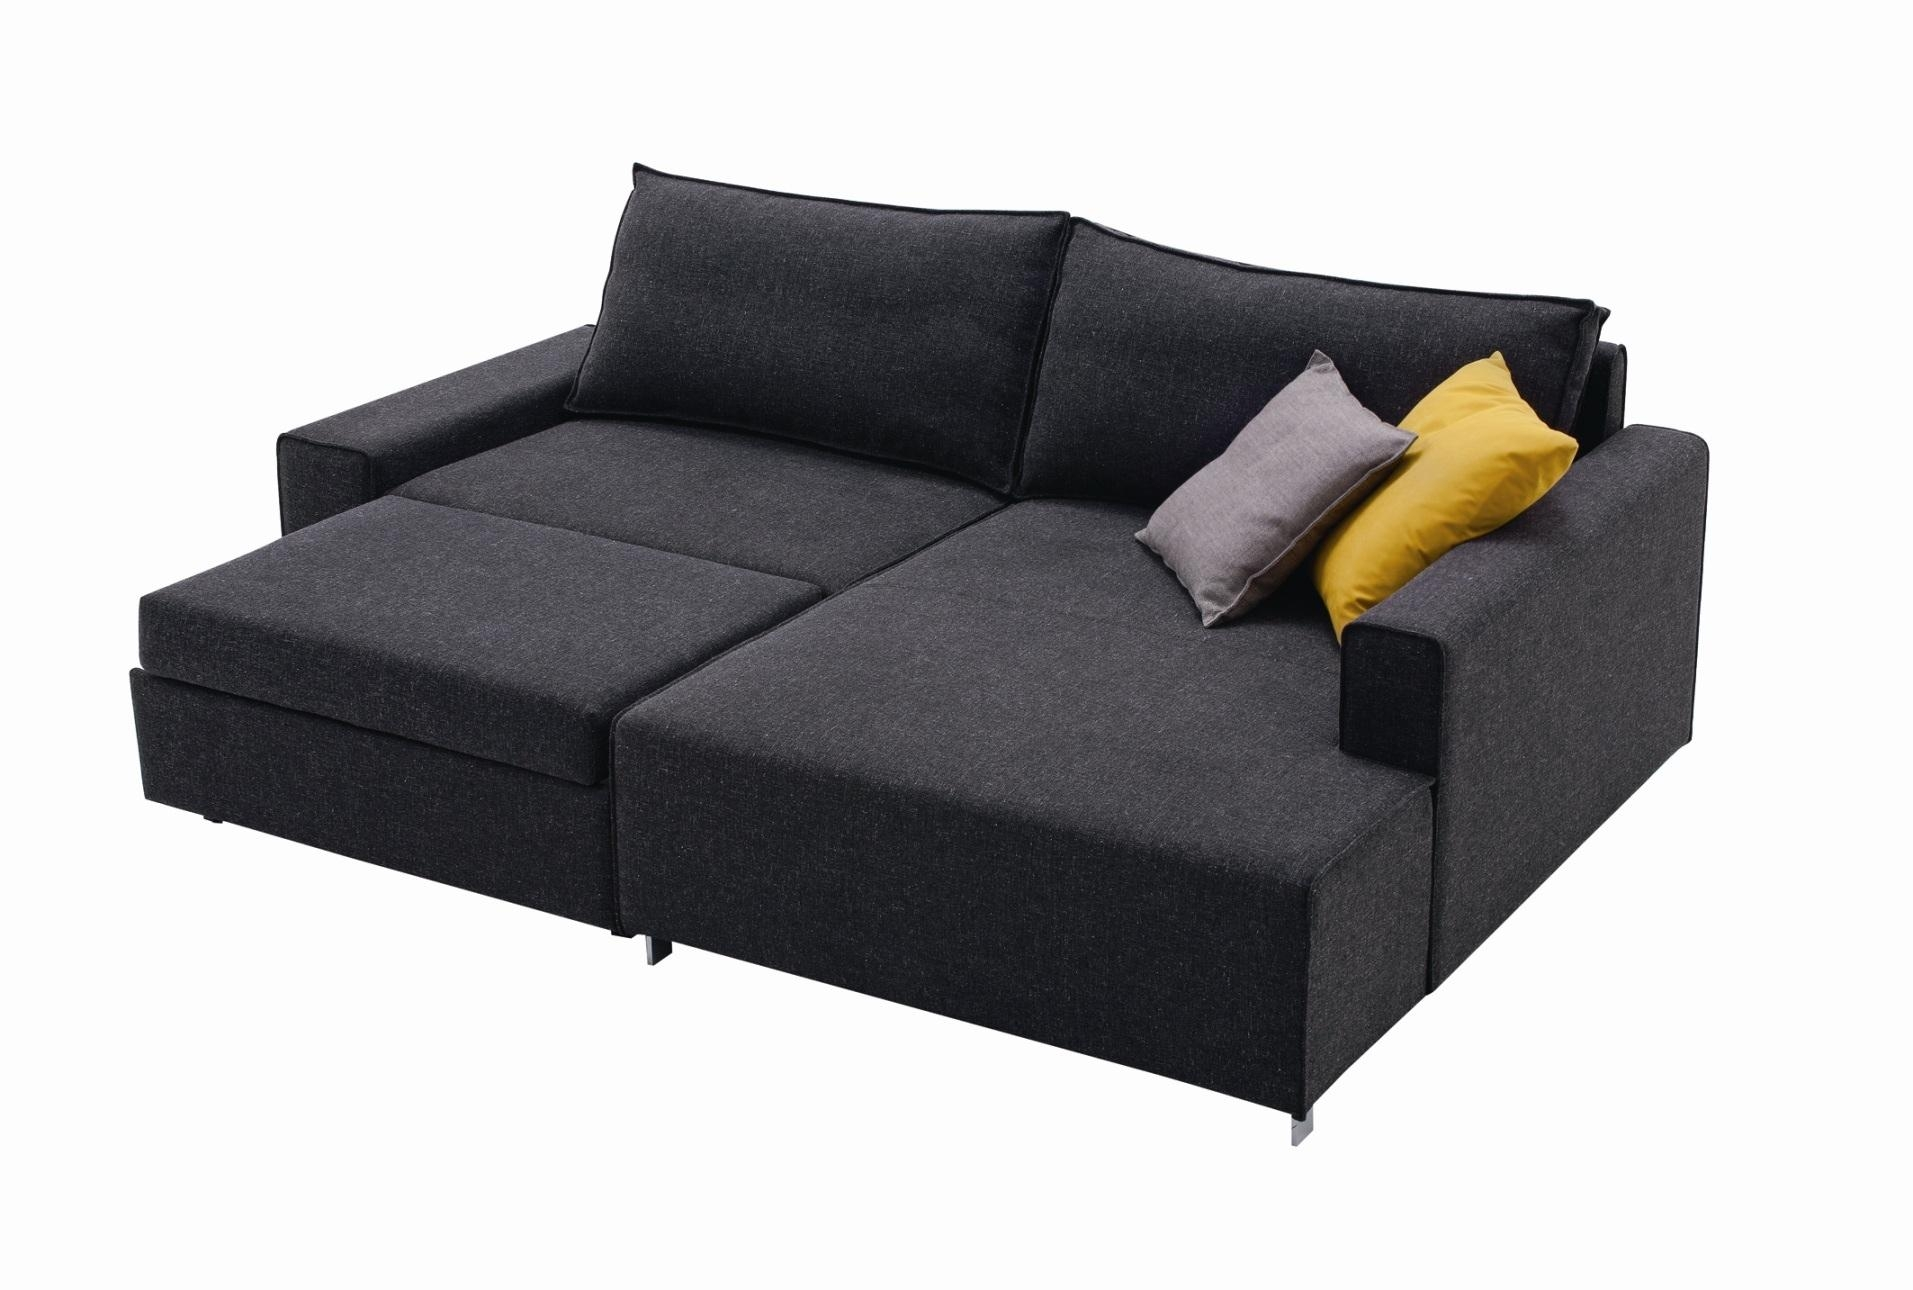 20 Best Collection of Mini Sofa Sleepers  Sofa Ideas